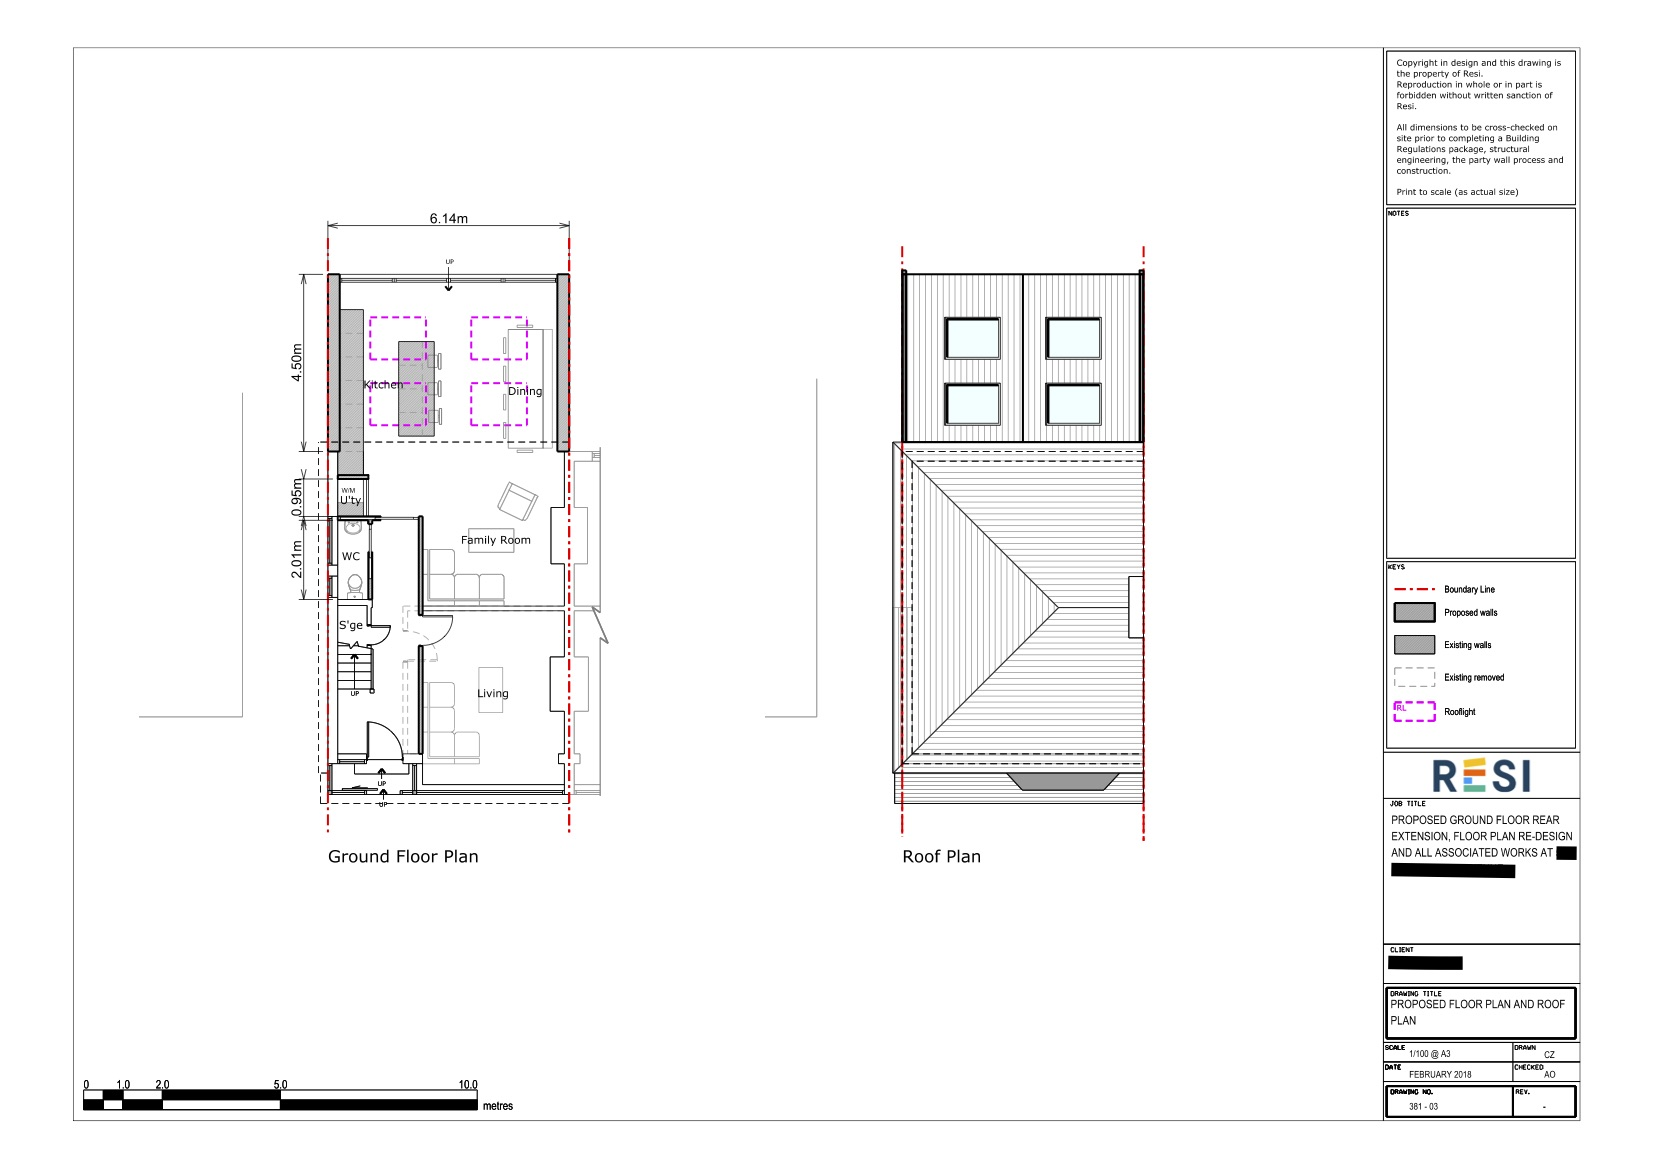 Gf architectural drawings   gf and roof floor plans